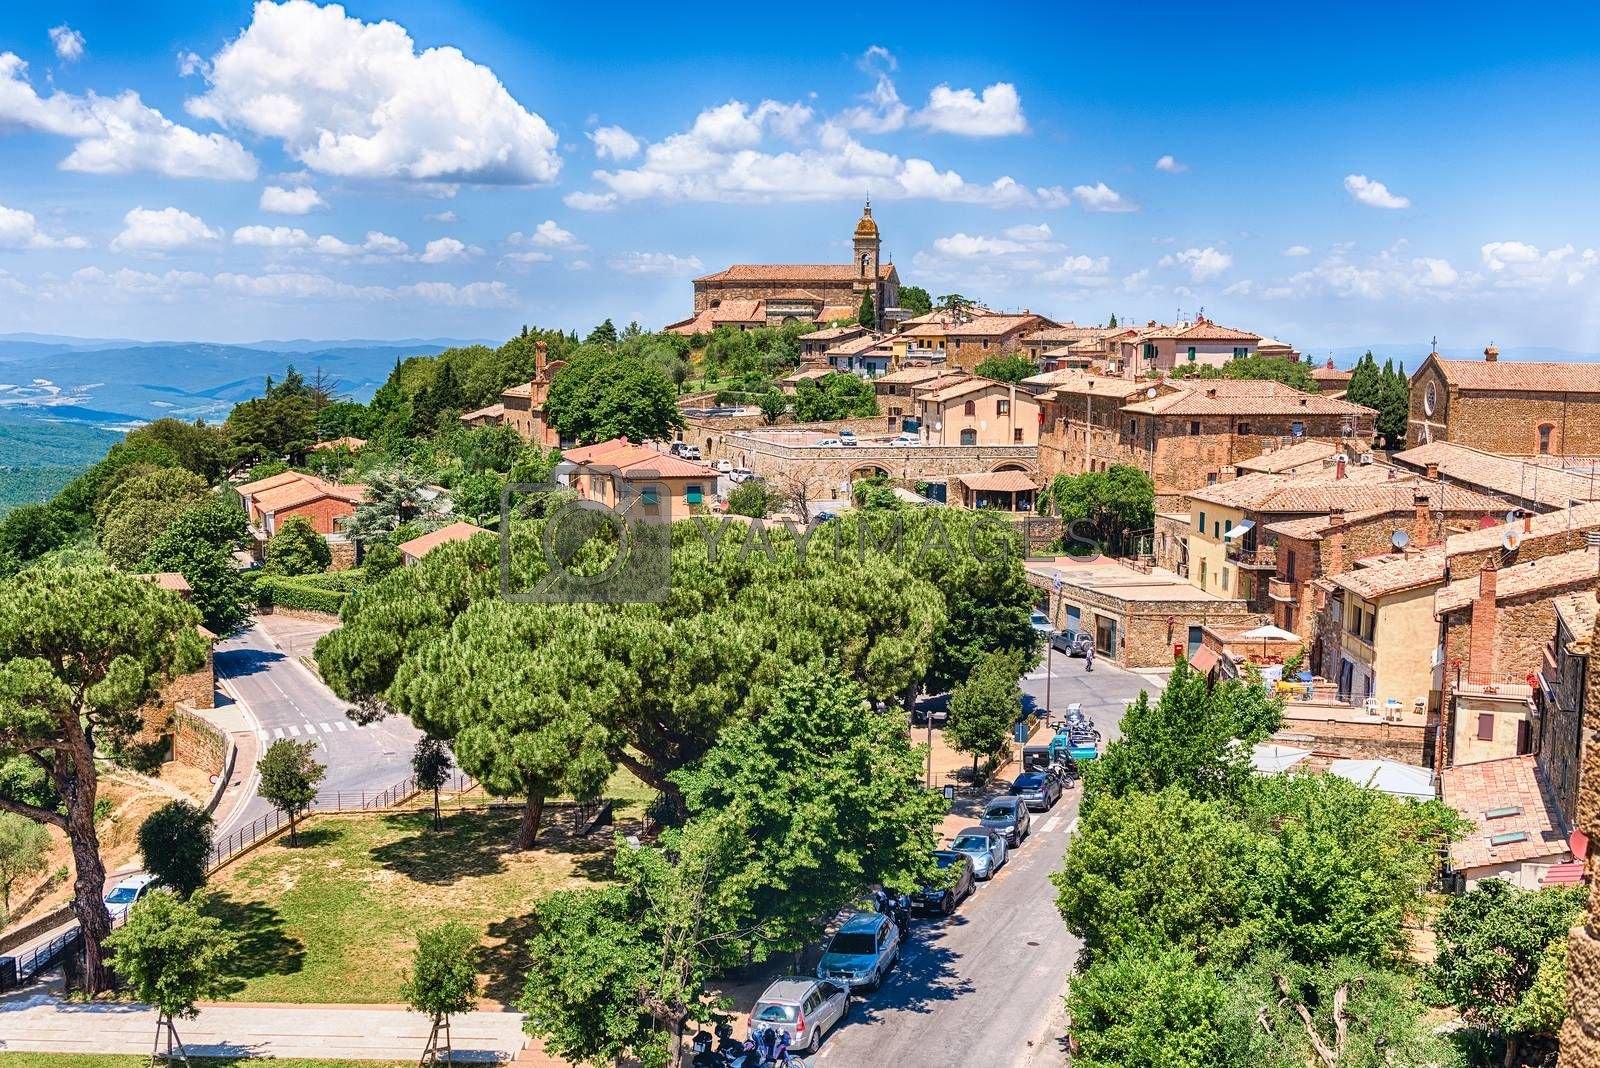 Scenic aerial view over the town of Montalcino, province of Siena, Tuscany, Italy